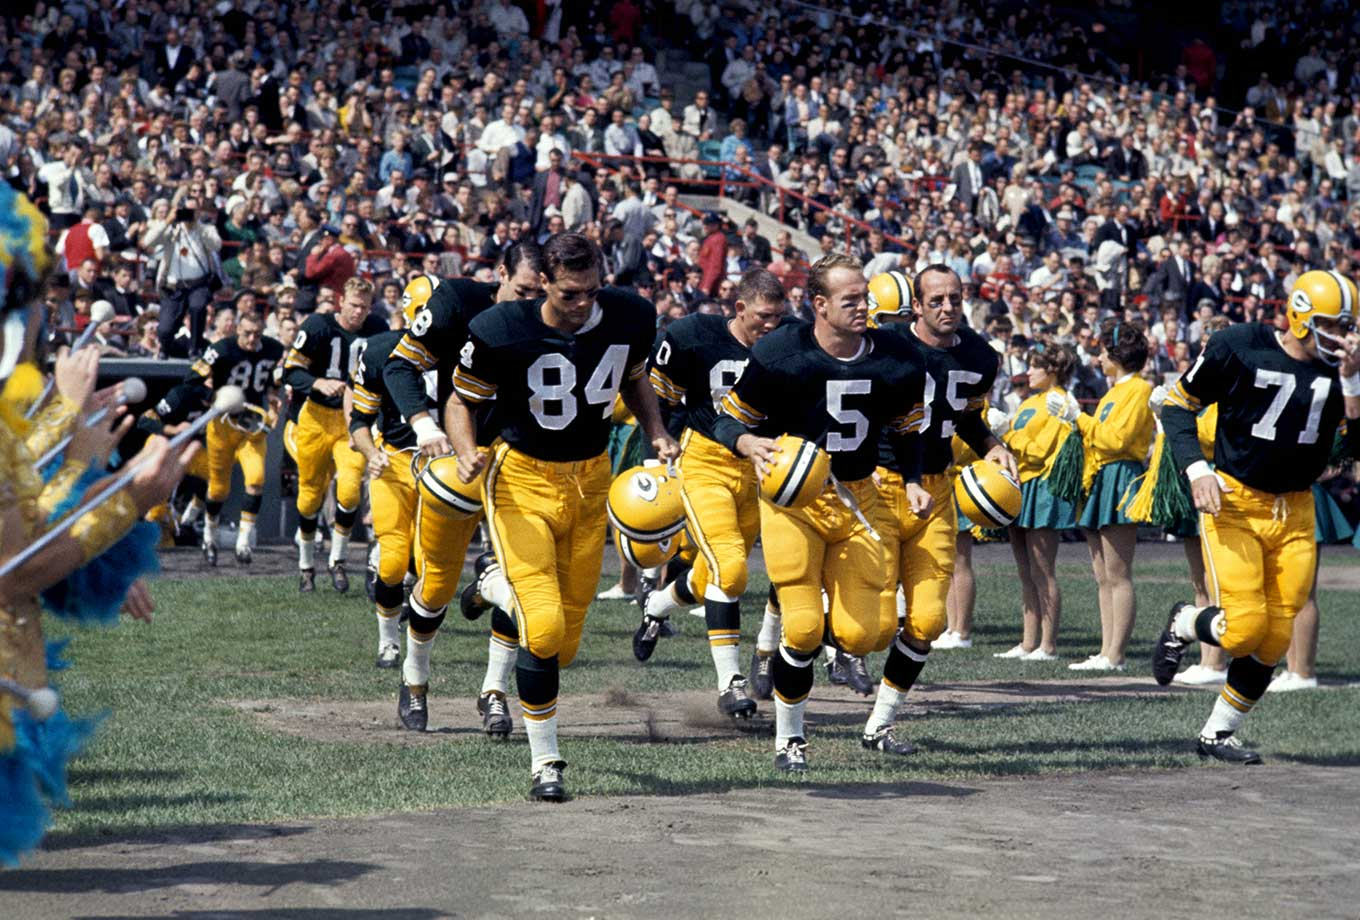 Sept. 23, 1962 — Green Bay Packers vs. St. Louis Cardinals